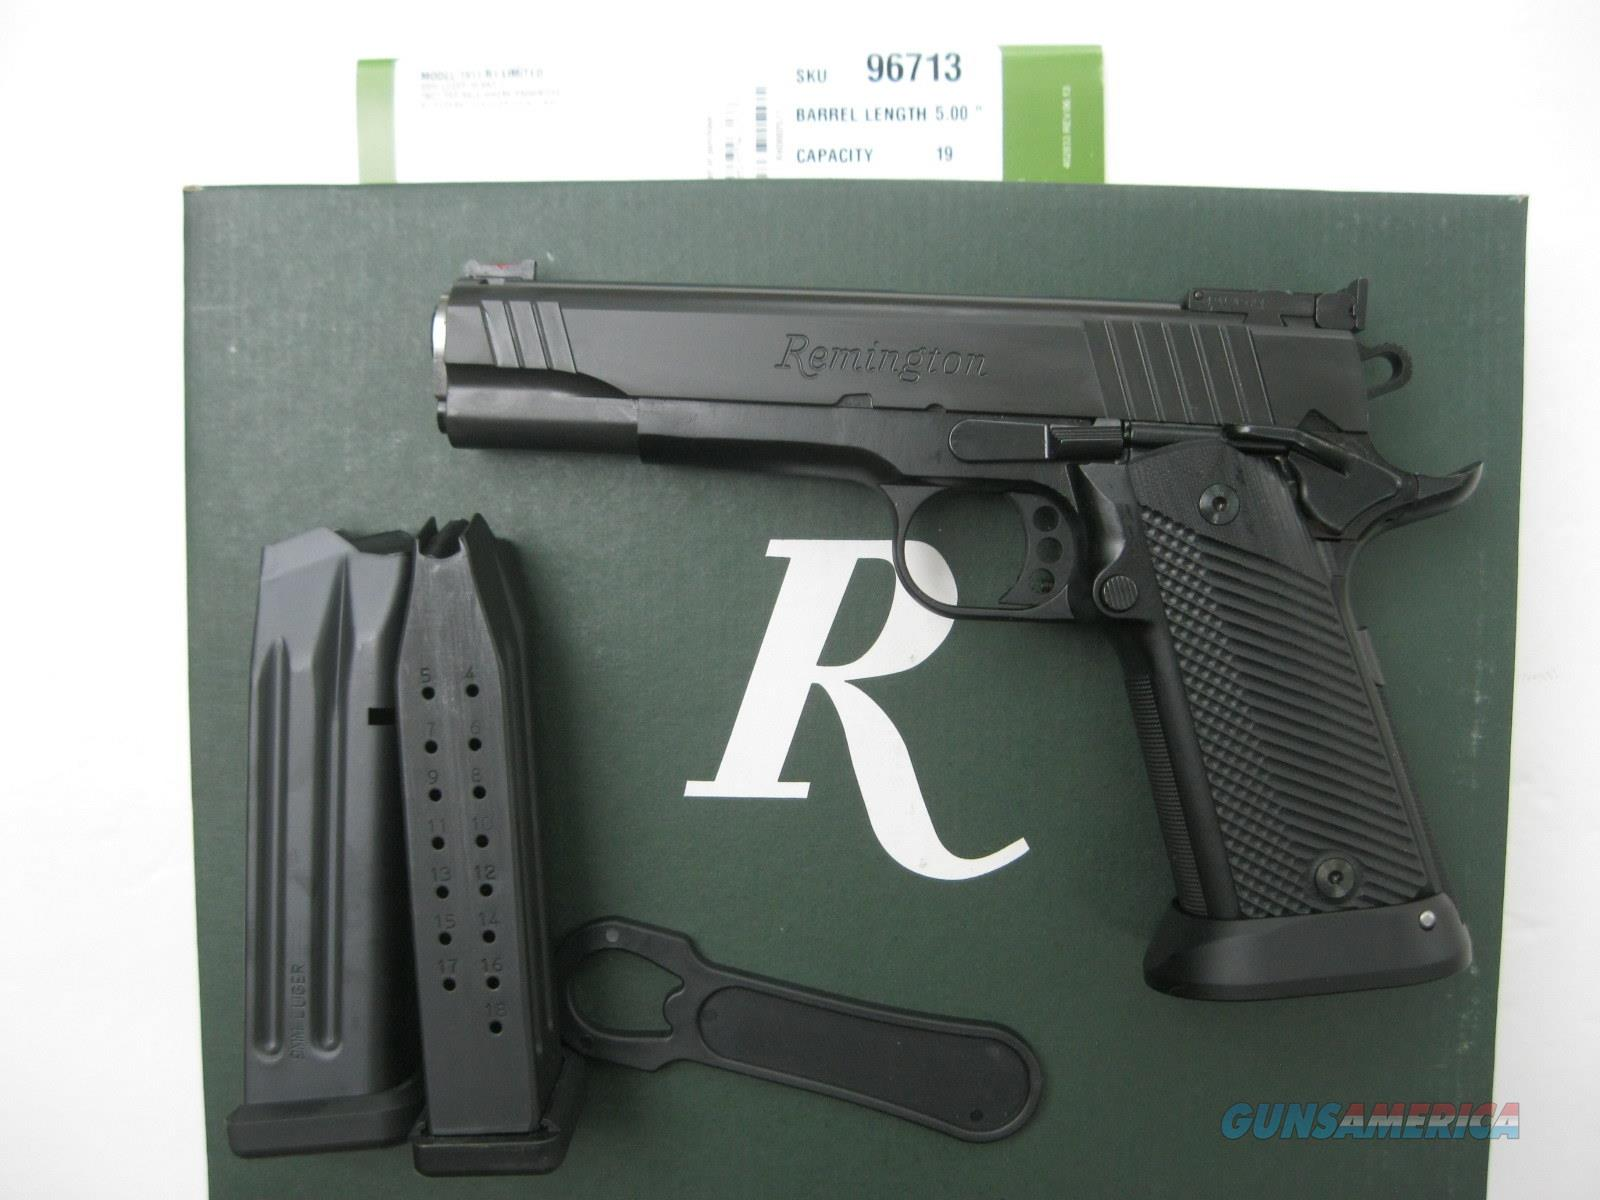 Remington R1 1911 9mm 19 Round High-Cap 96713  *NEW*  Guns > Pistols > Remington Pistols - Modern > 1911